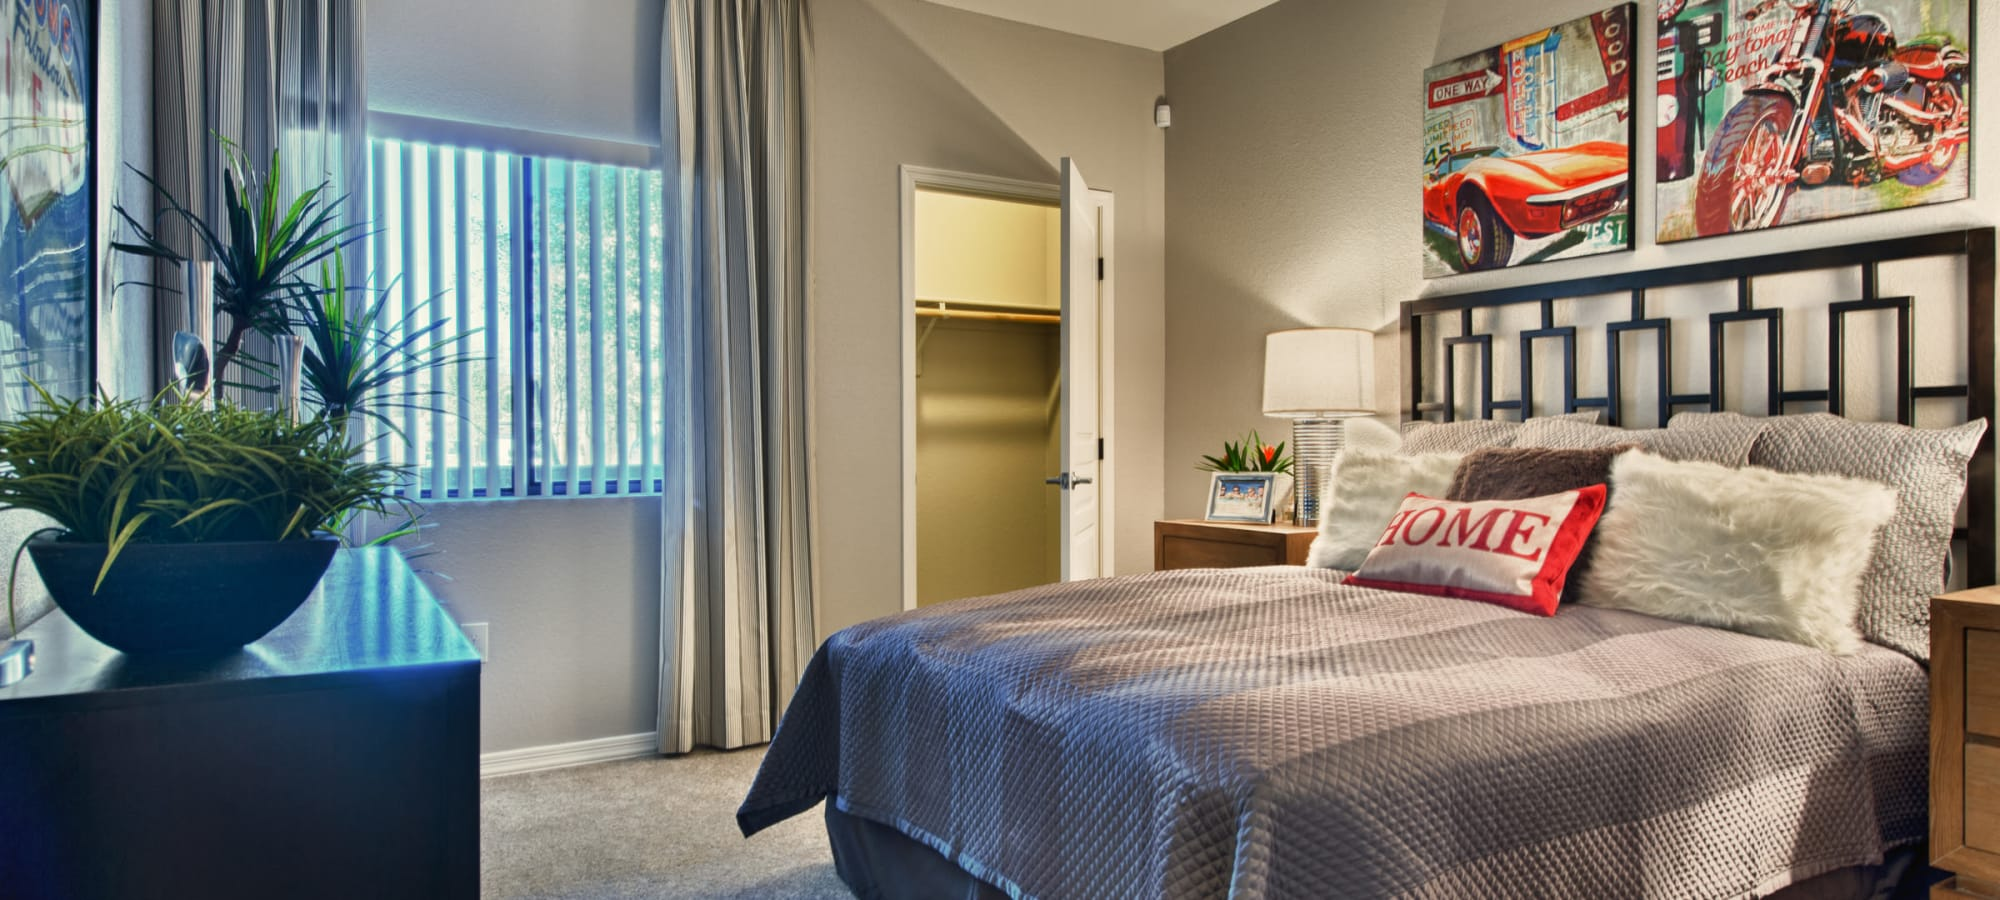 Large furnished bedroom at Avenue 25 Apartments in Phoenix, Arizona